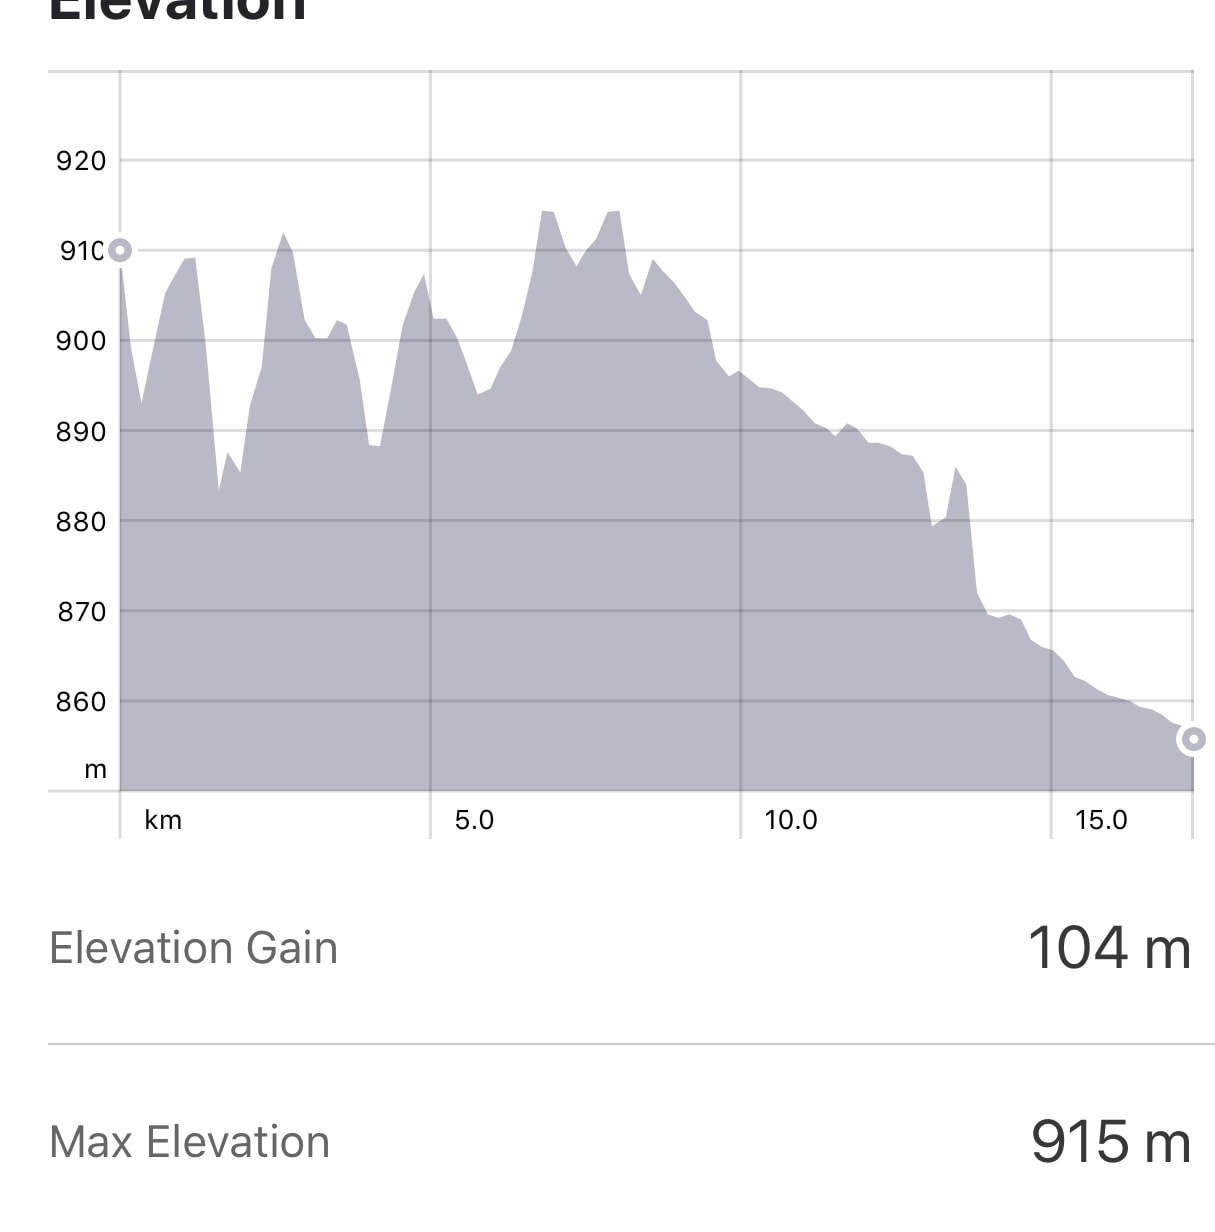 Strava: Leon to San Martin del Camino Elevation